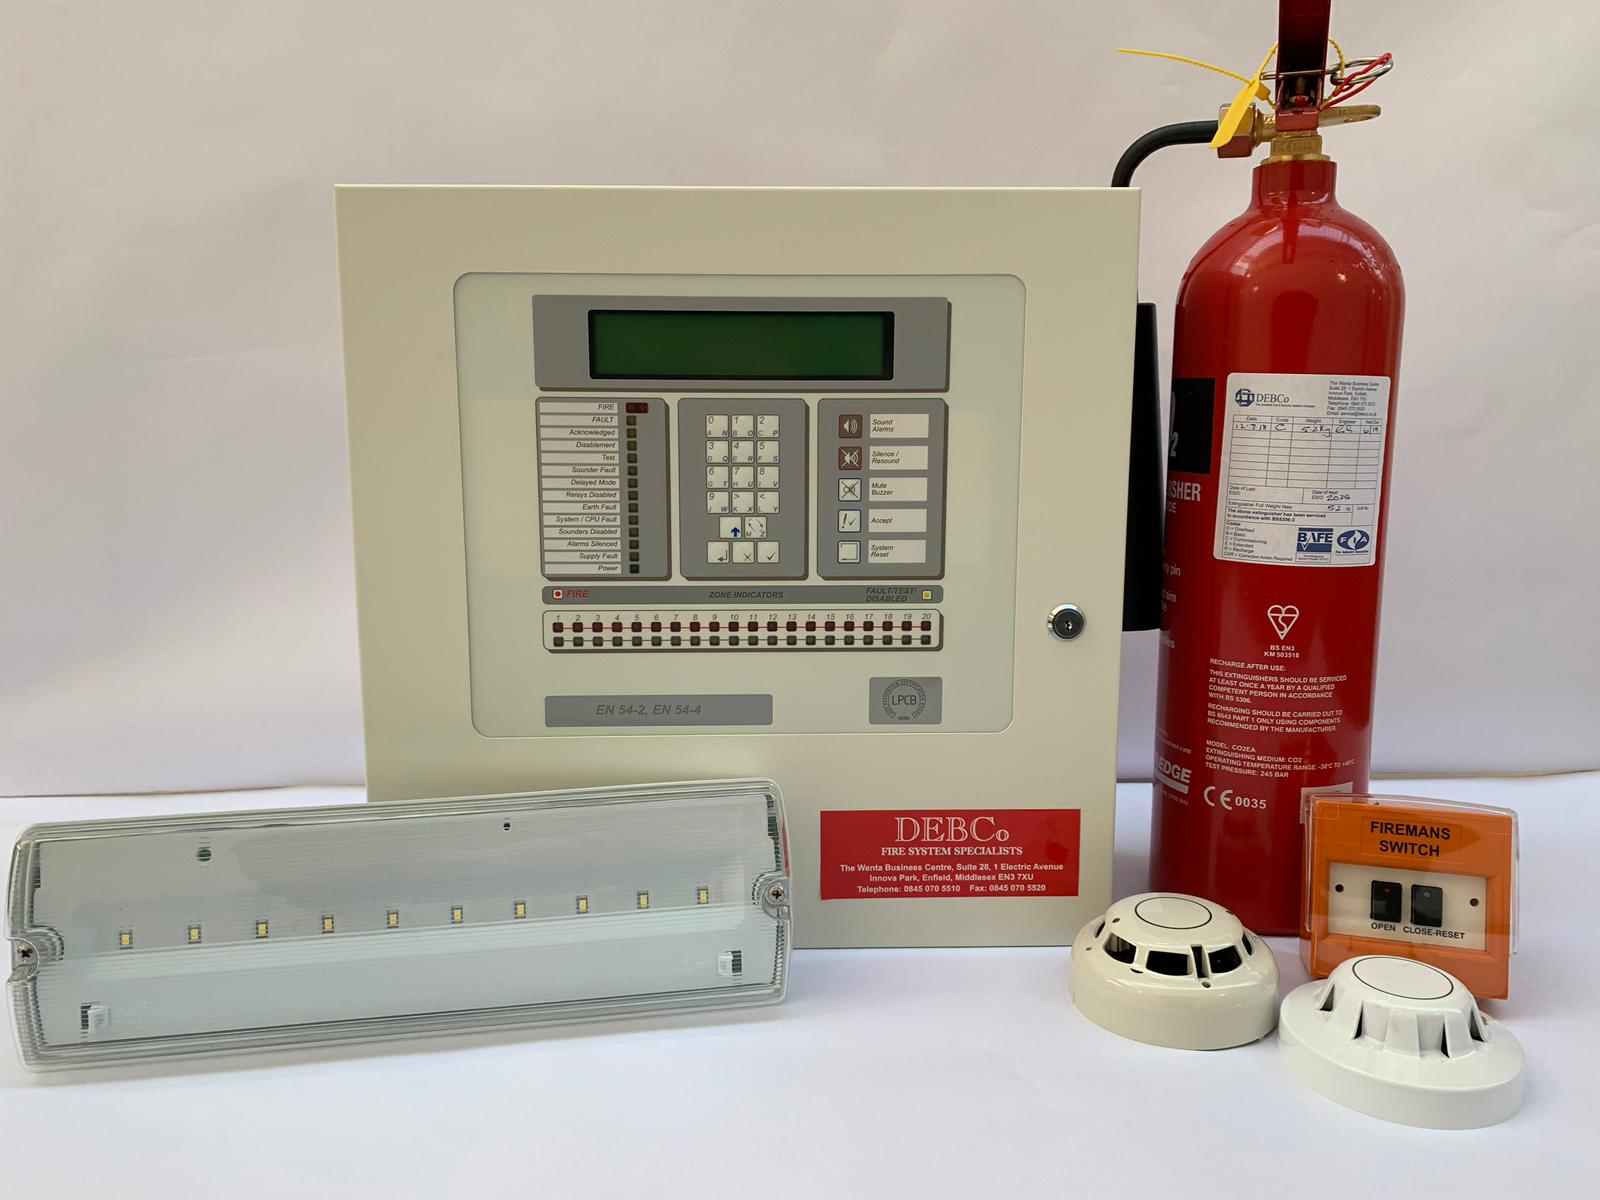 Fire System Specialists - Our dedicated engineers can support you with the design, installation and maintenance of new or existing fire alarms and extinguishers.